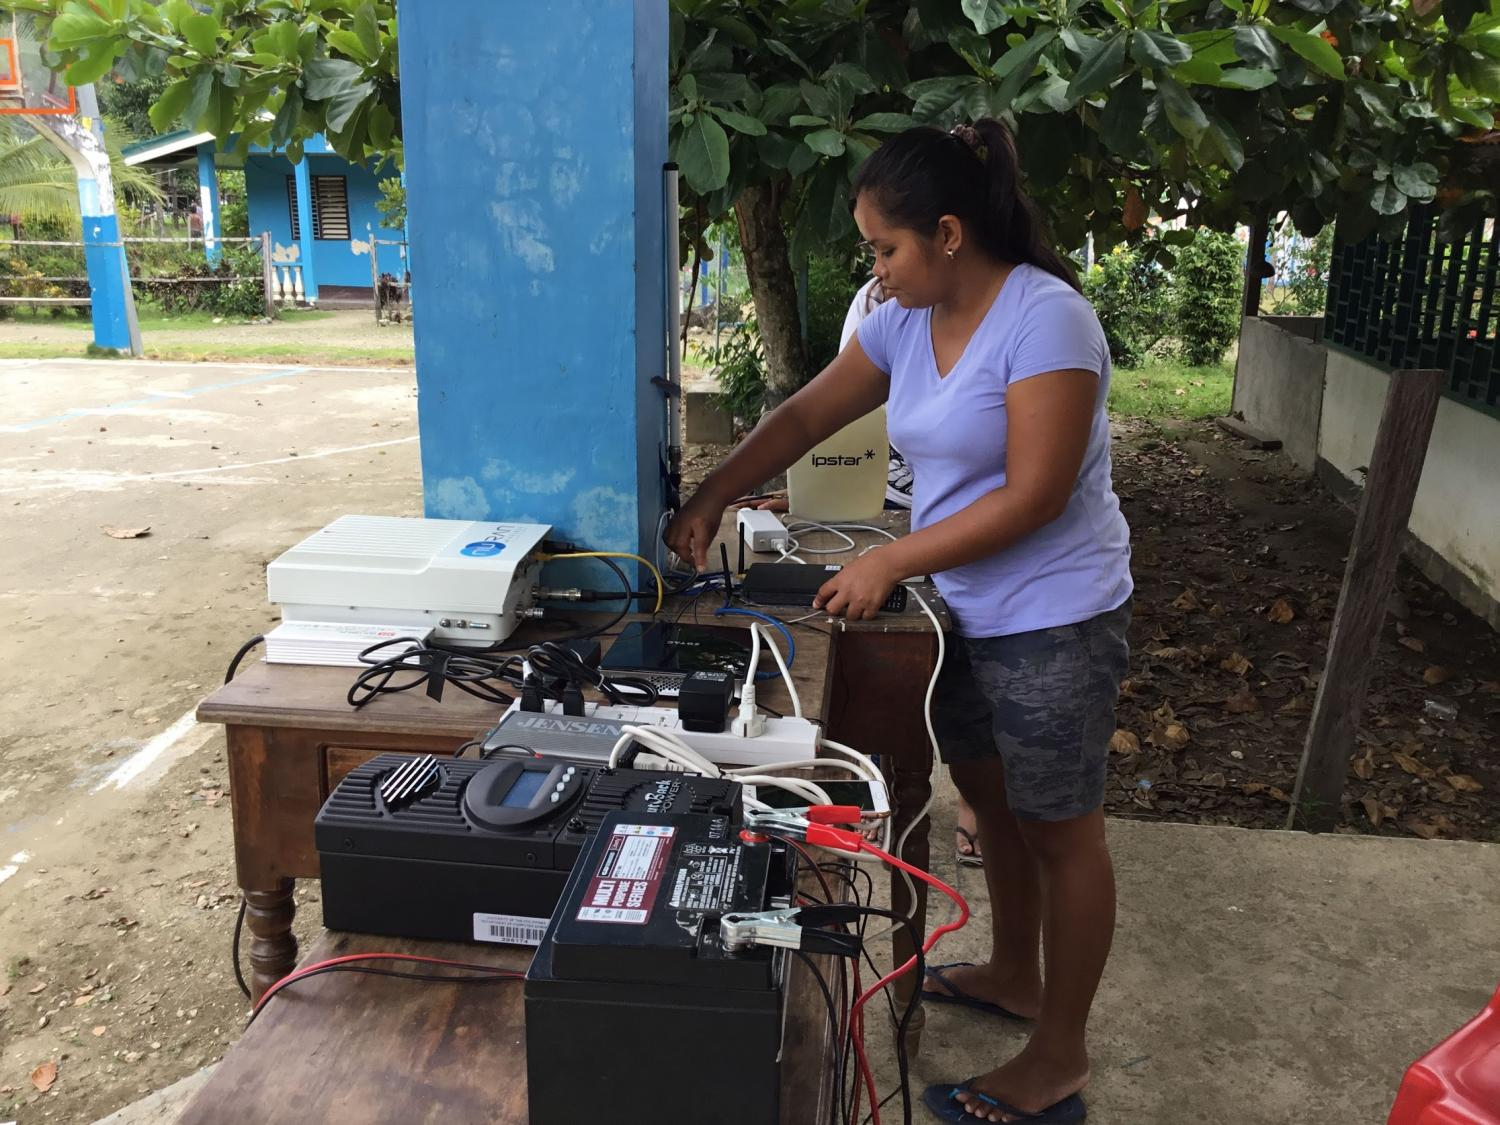 A woman setting up network cables on a table